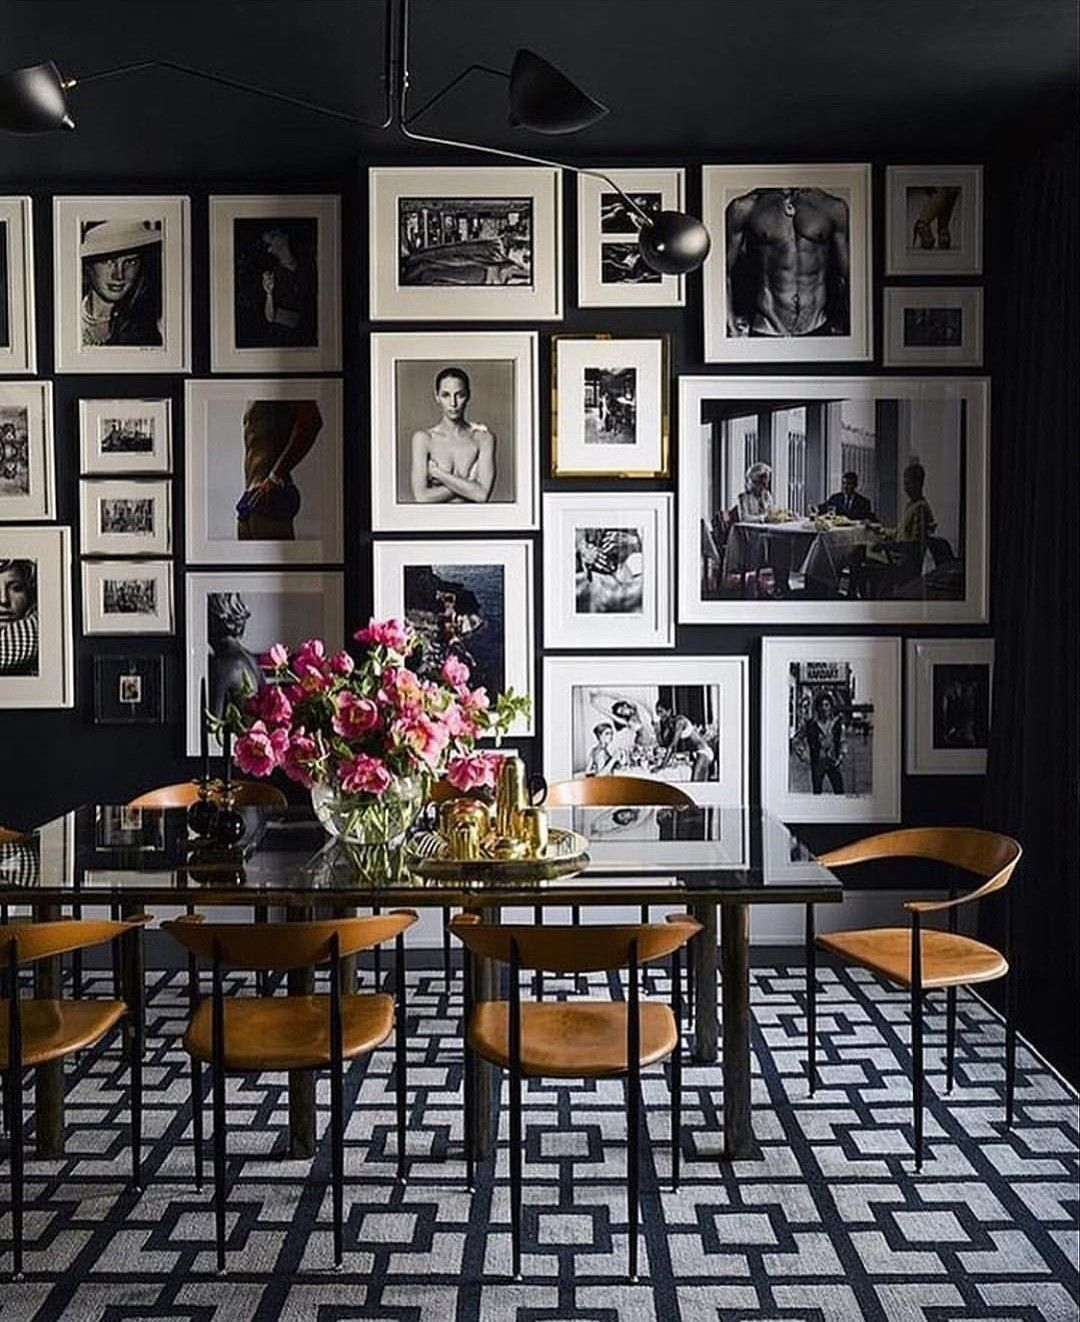 30 Black White Living Rooms That Work Their Monochrome Magic: Pin By Joe Fantetti On Rooms I Like In 2019